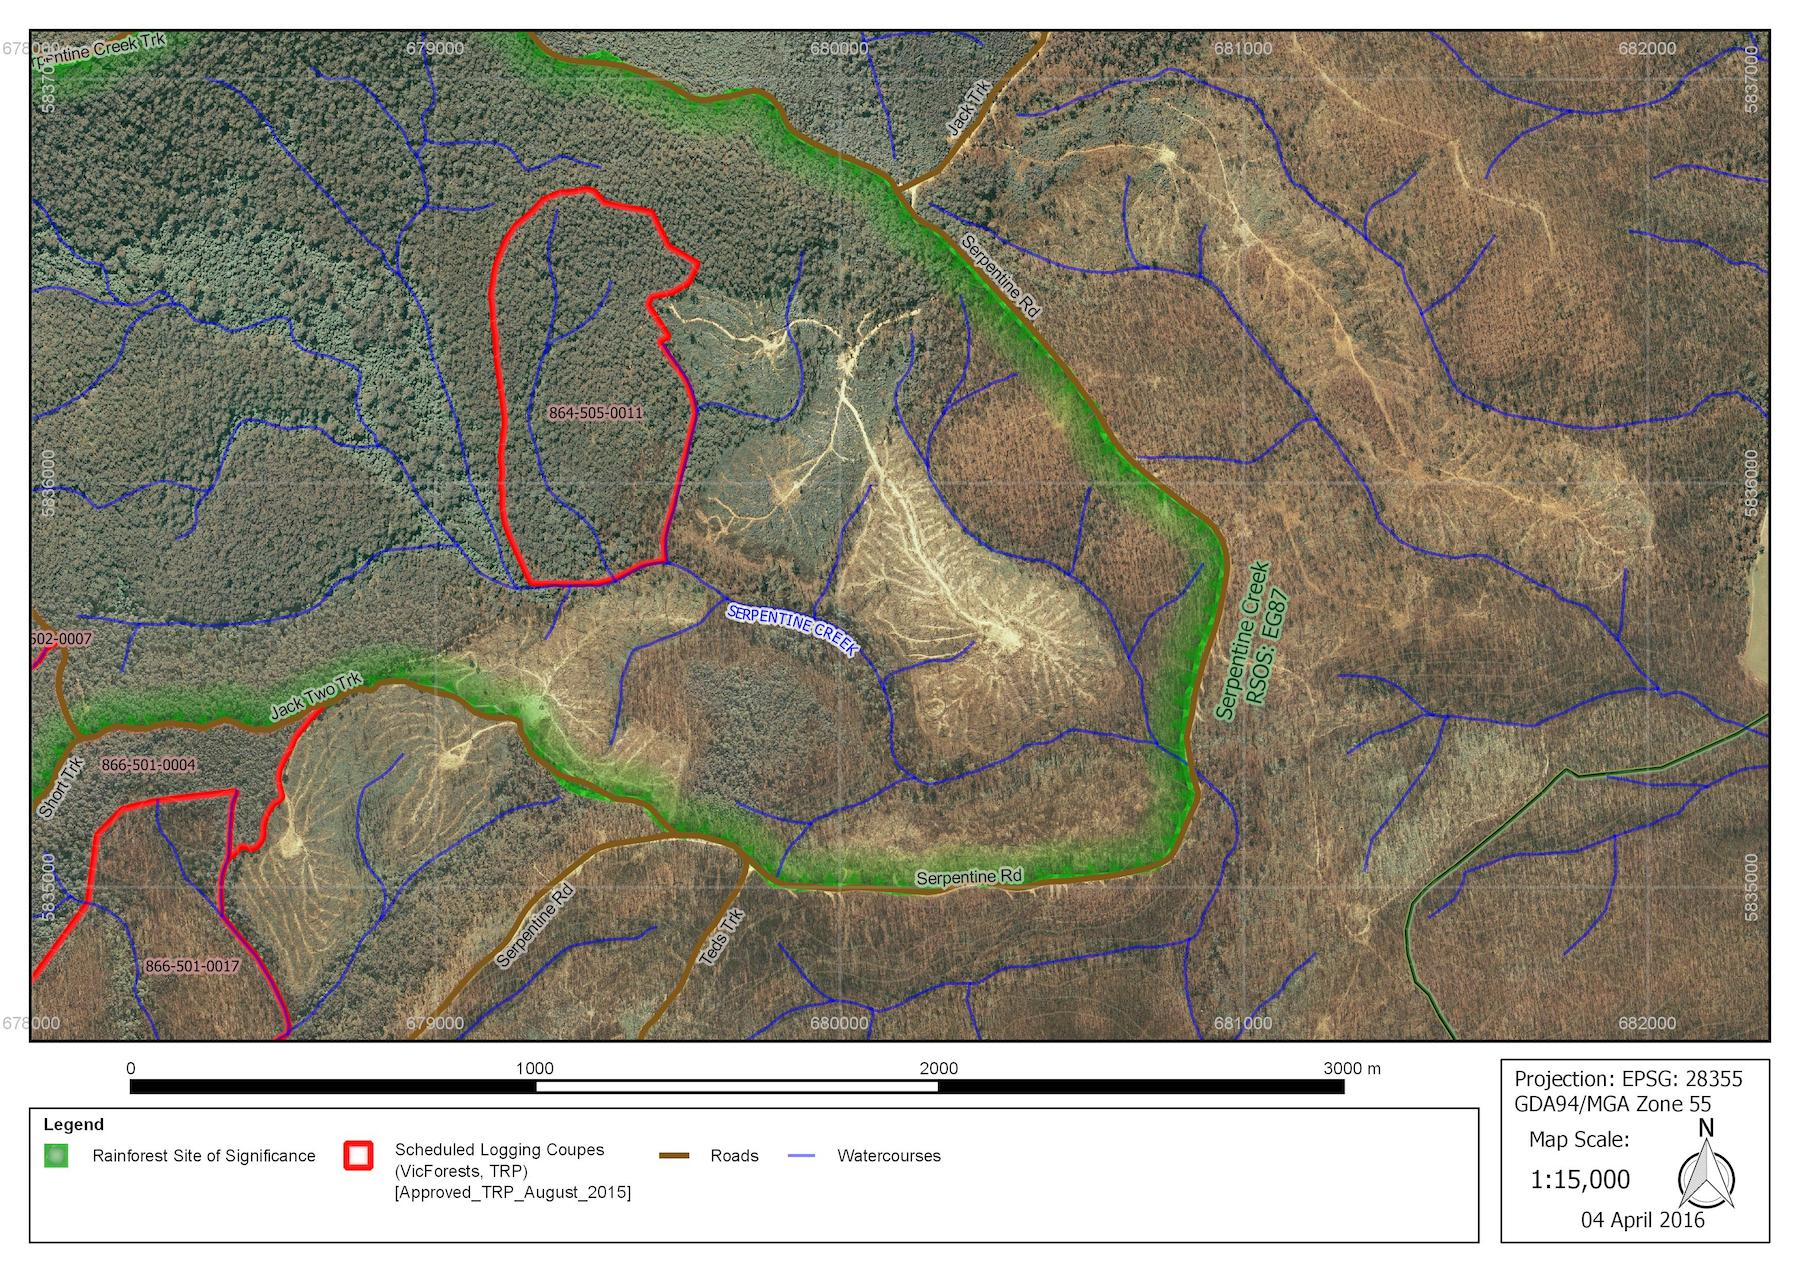 160404_-_1-15000_Overview_Map_-_Serpentine_Creek_RSOS_EG87.jpeg